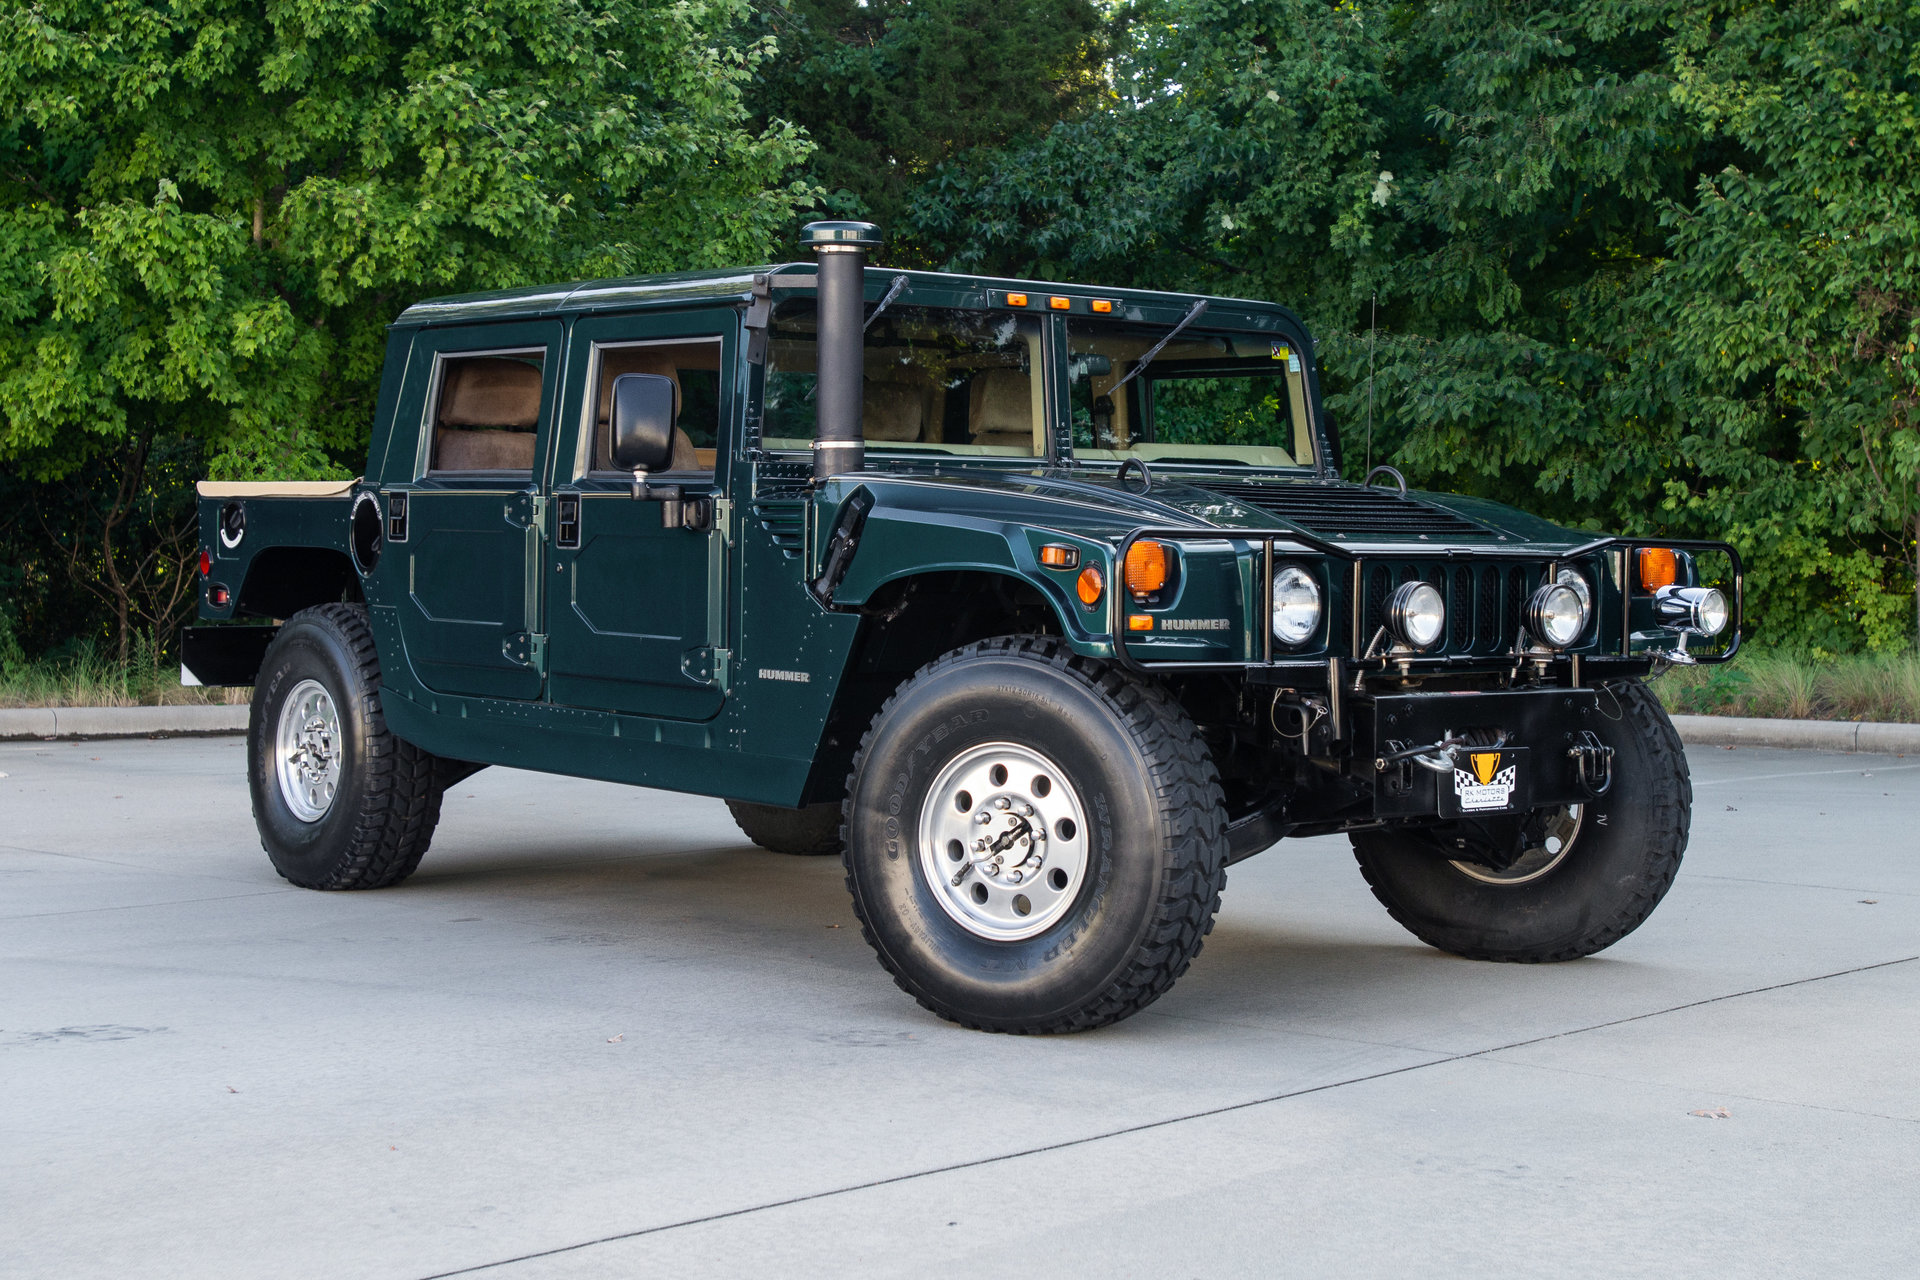 ... 1996 Am General Hummer For Sale ...